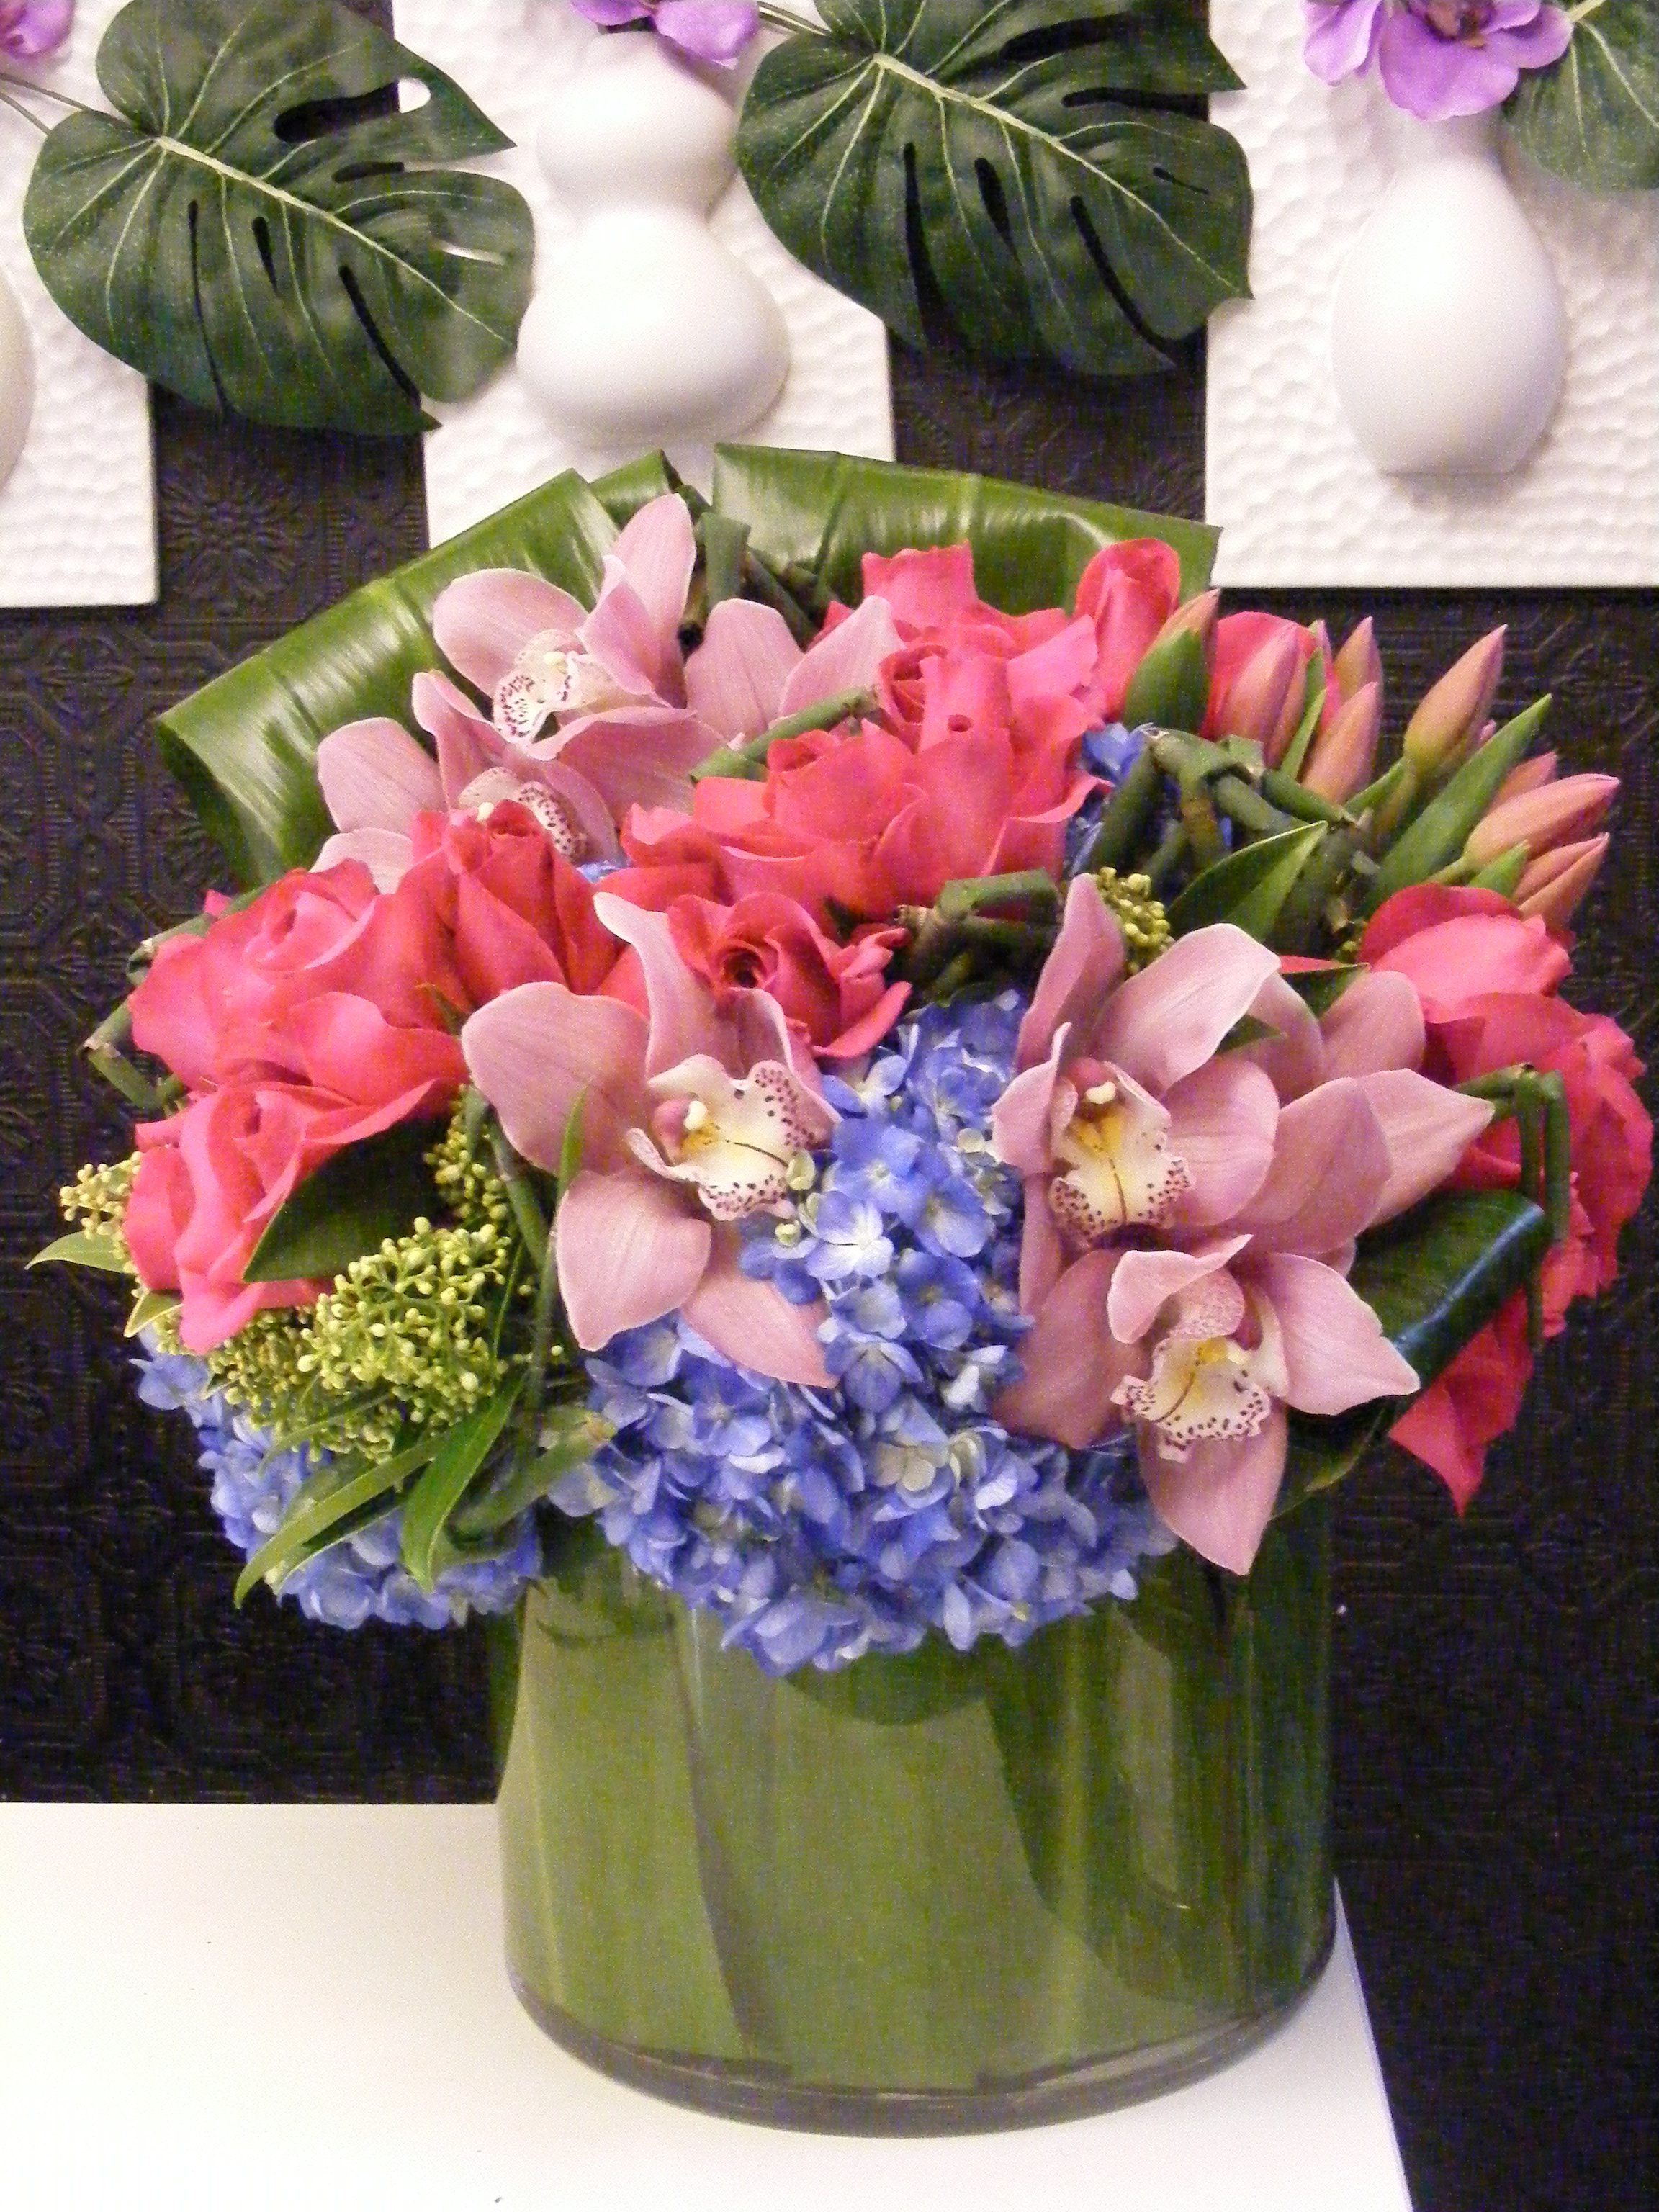 Celebrity flowers mondu floral design high end downtown toronto mondu floral design has had the privilege of designing some beautiful floral arrangements for some a list celebrities that have visited the city of toronto izmirmasajfo